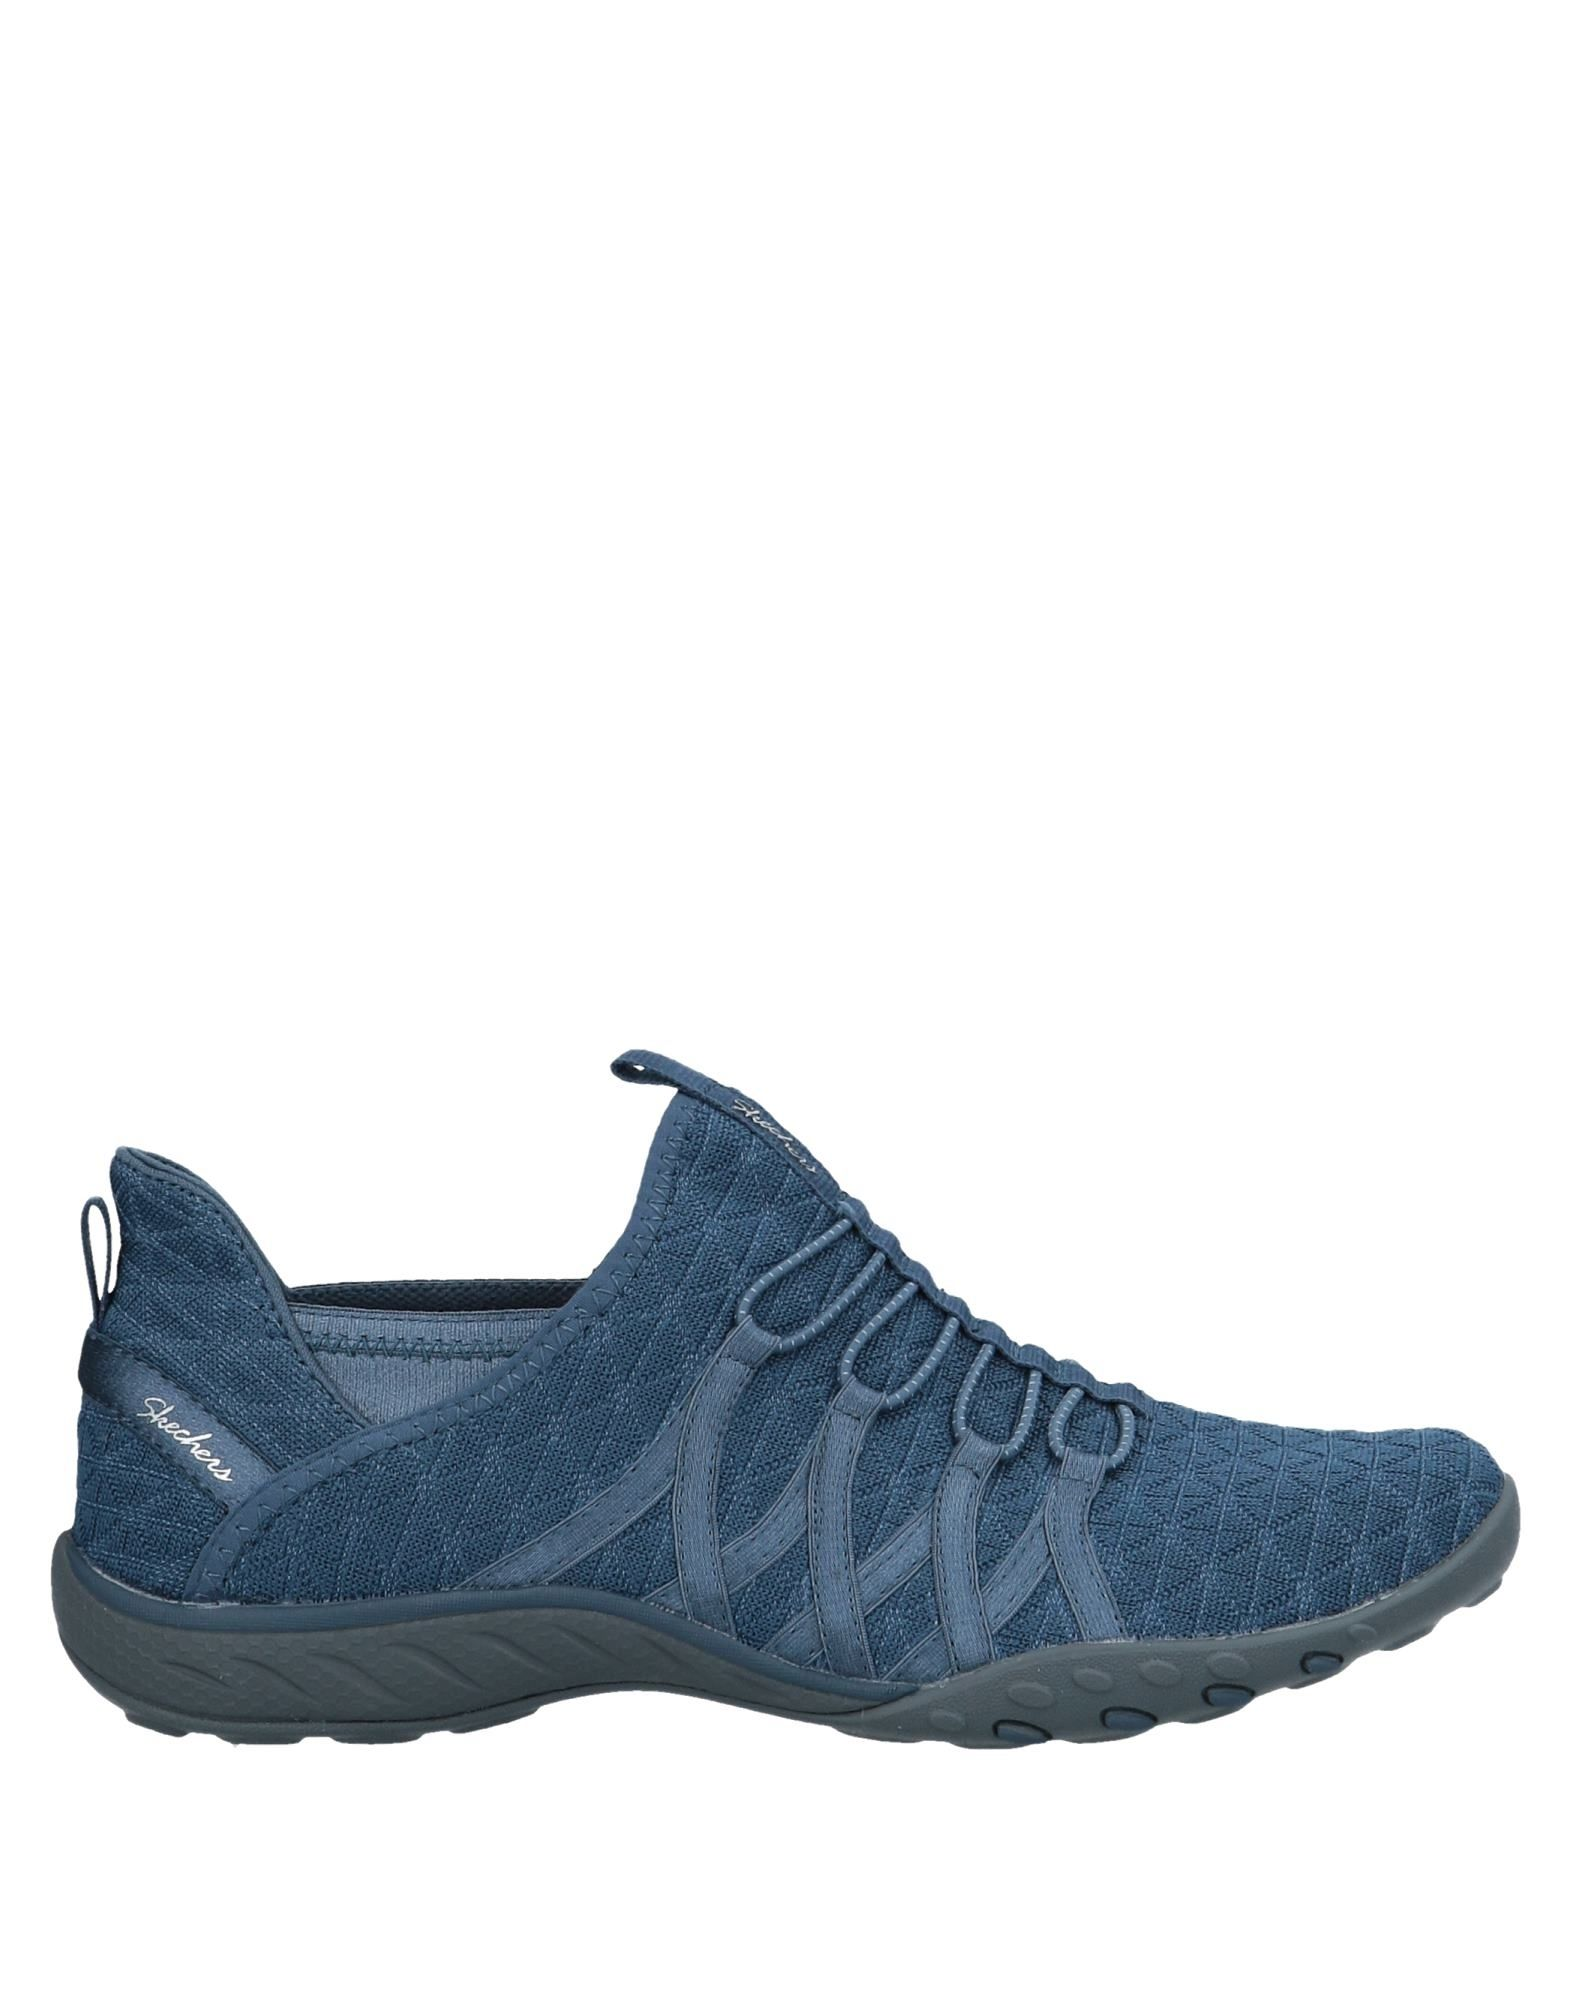 Skechers Sneakers online - Women Skechers Sneakers online Sneakers on  Canada - 11554762BV ccb6e7